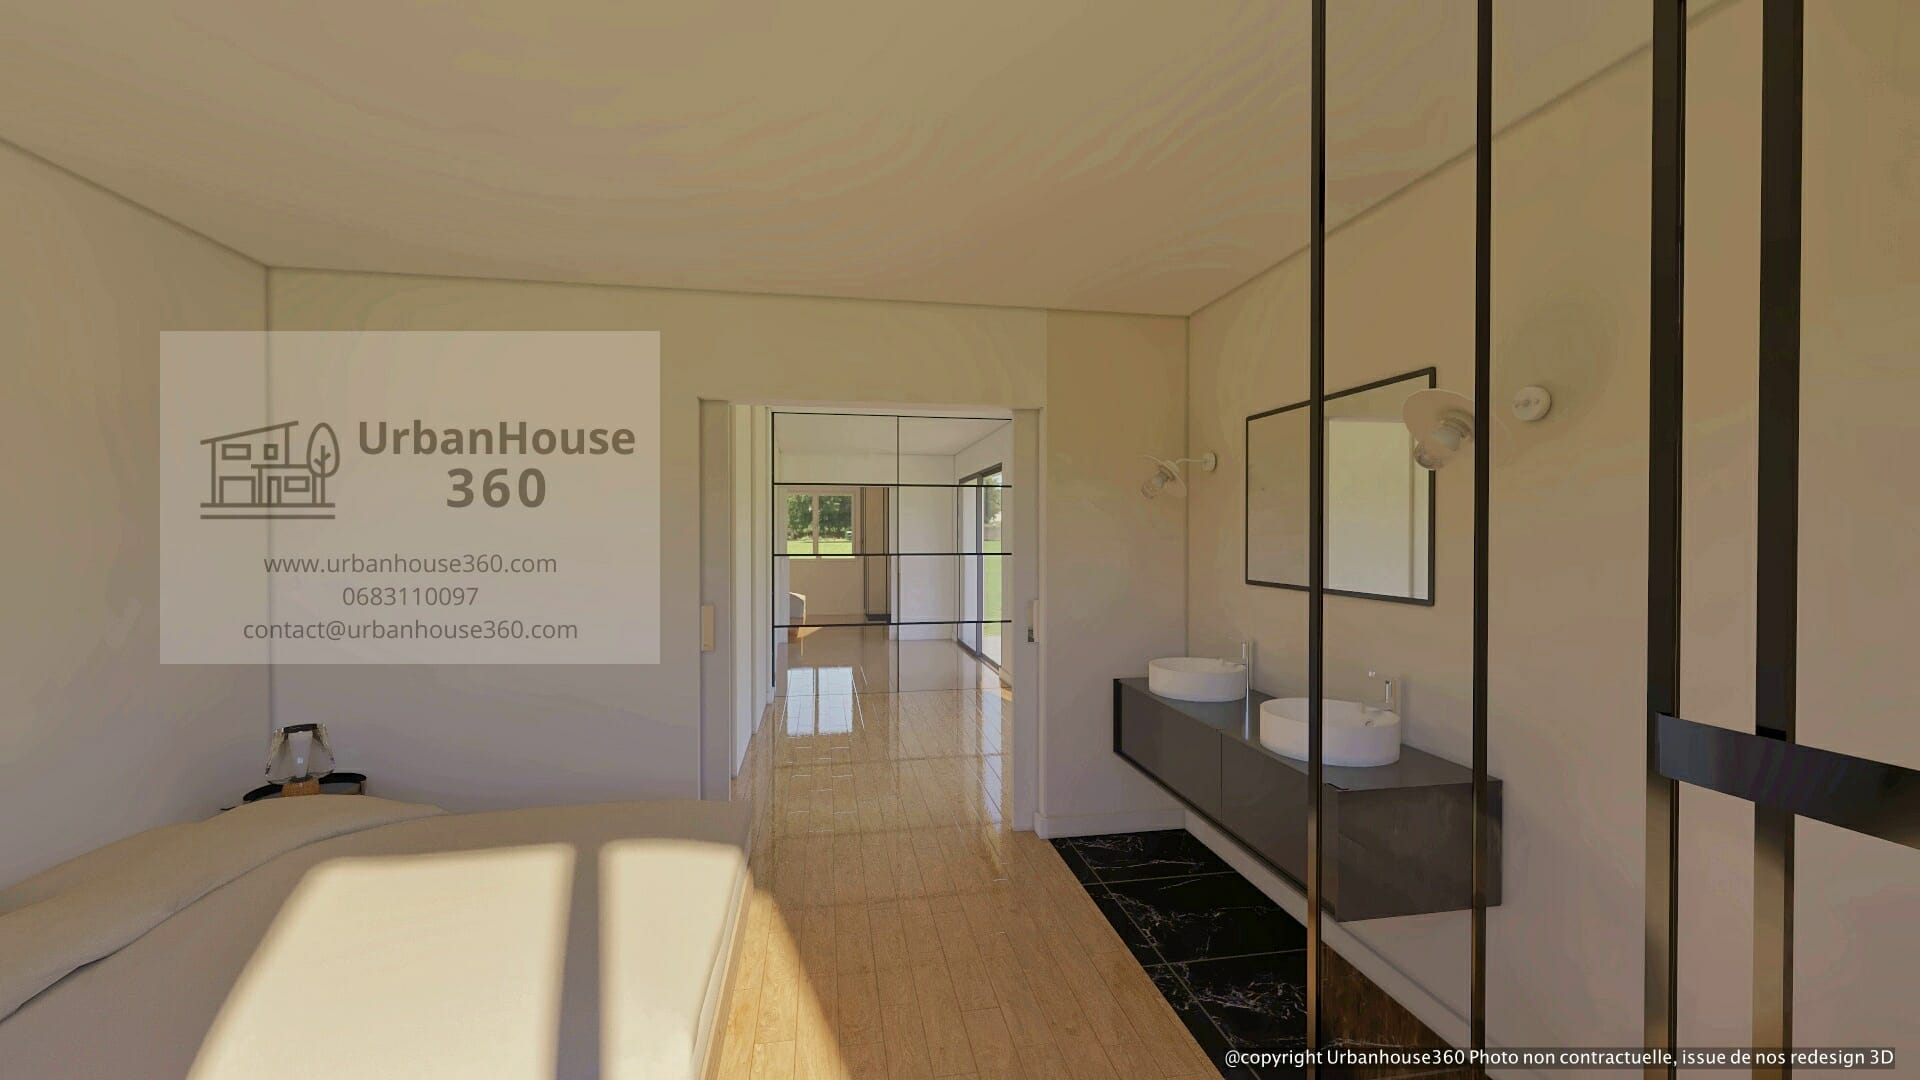 Urbanhouse360-Coulounieix-chamiers-Chambre_3